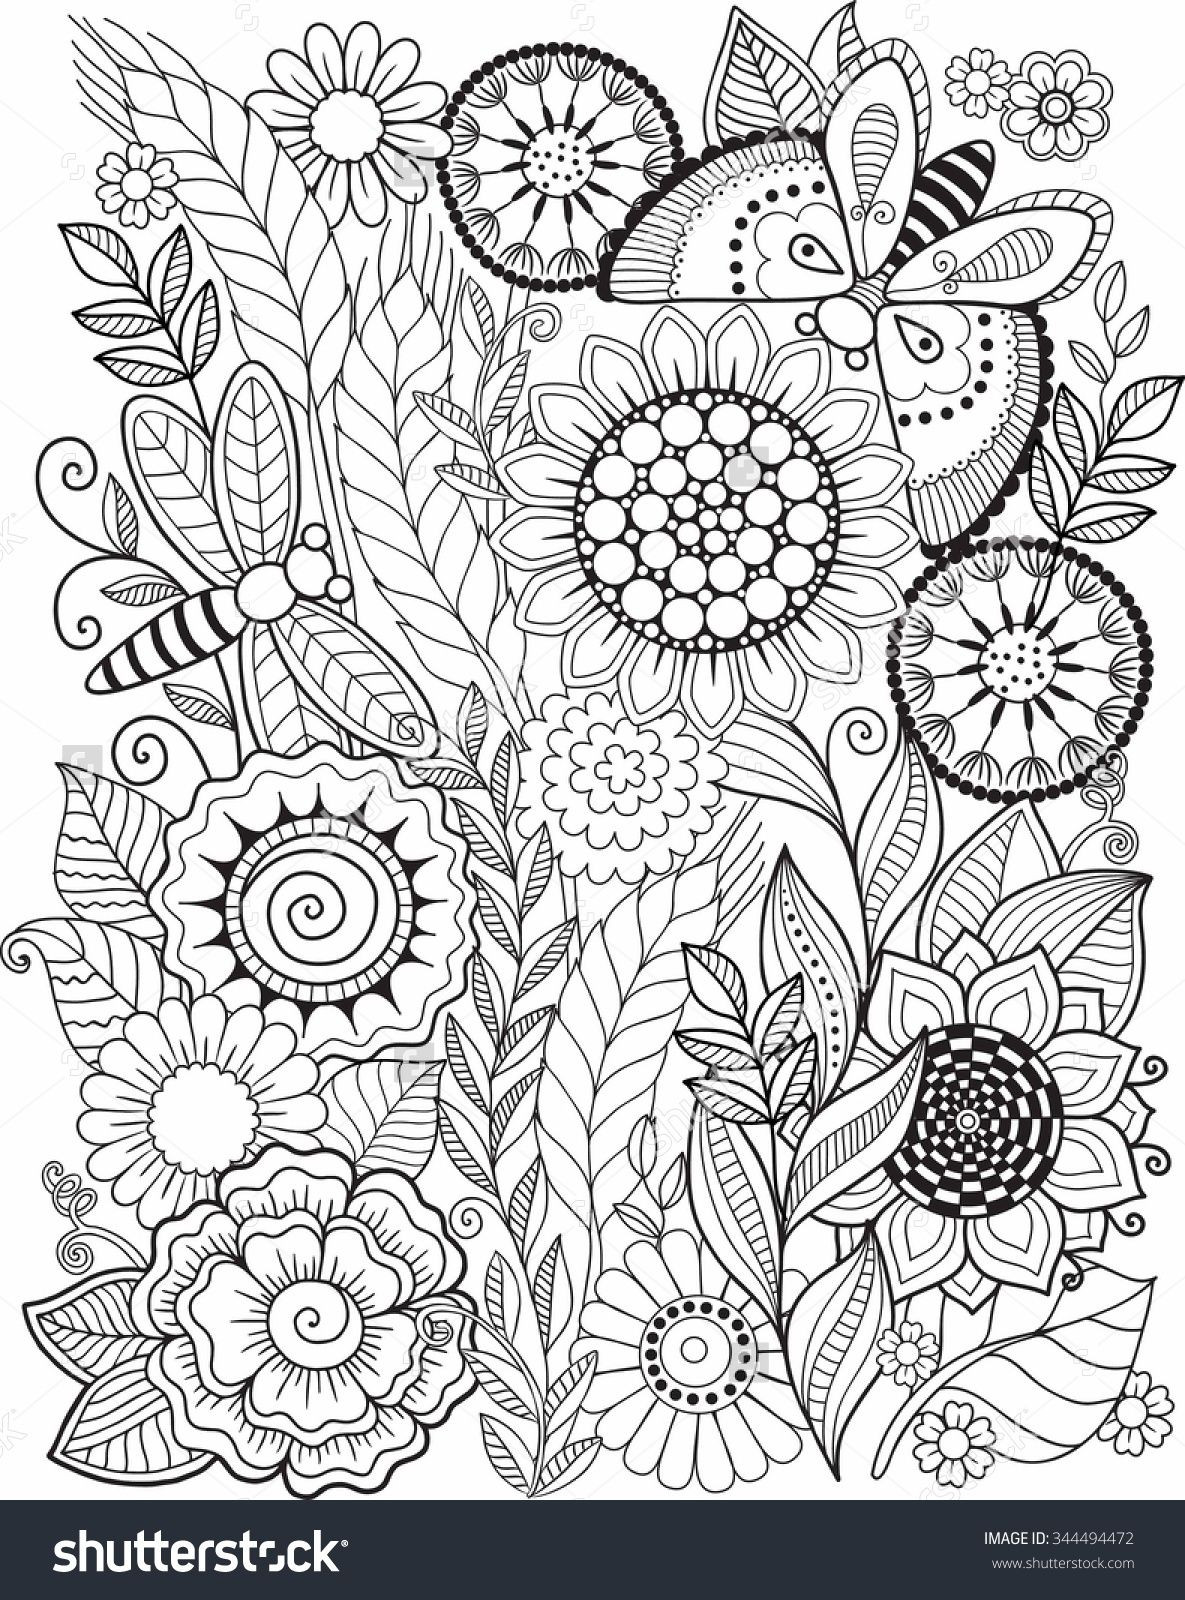 1185x1600 Iran Coloring Pages New Coloring Book For Adult Summer Flowers